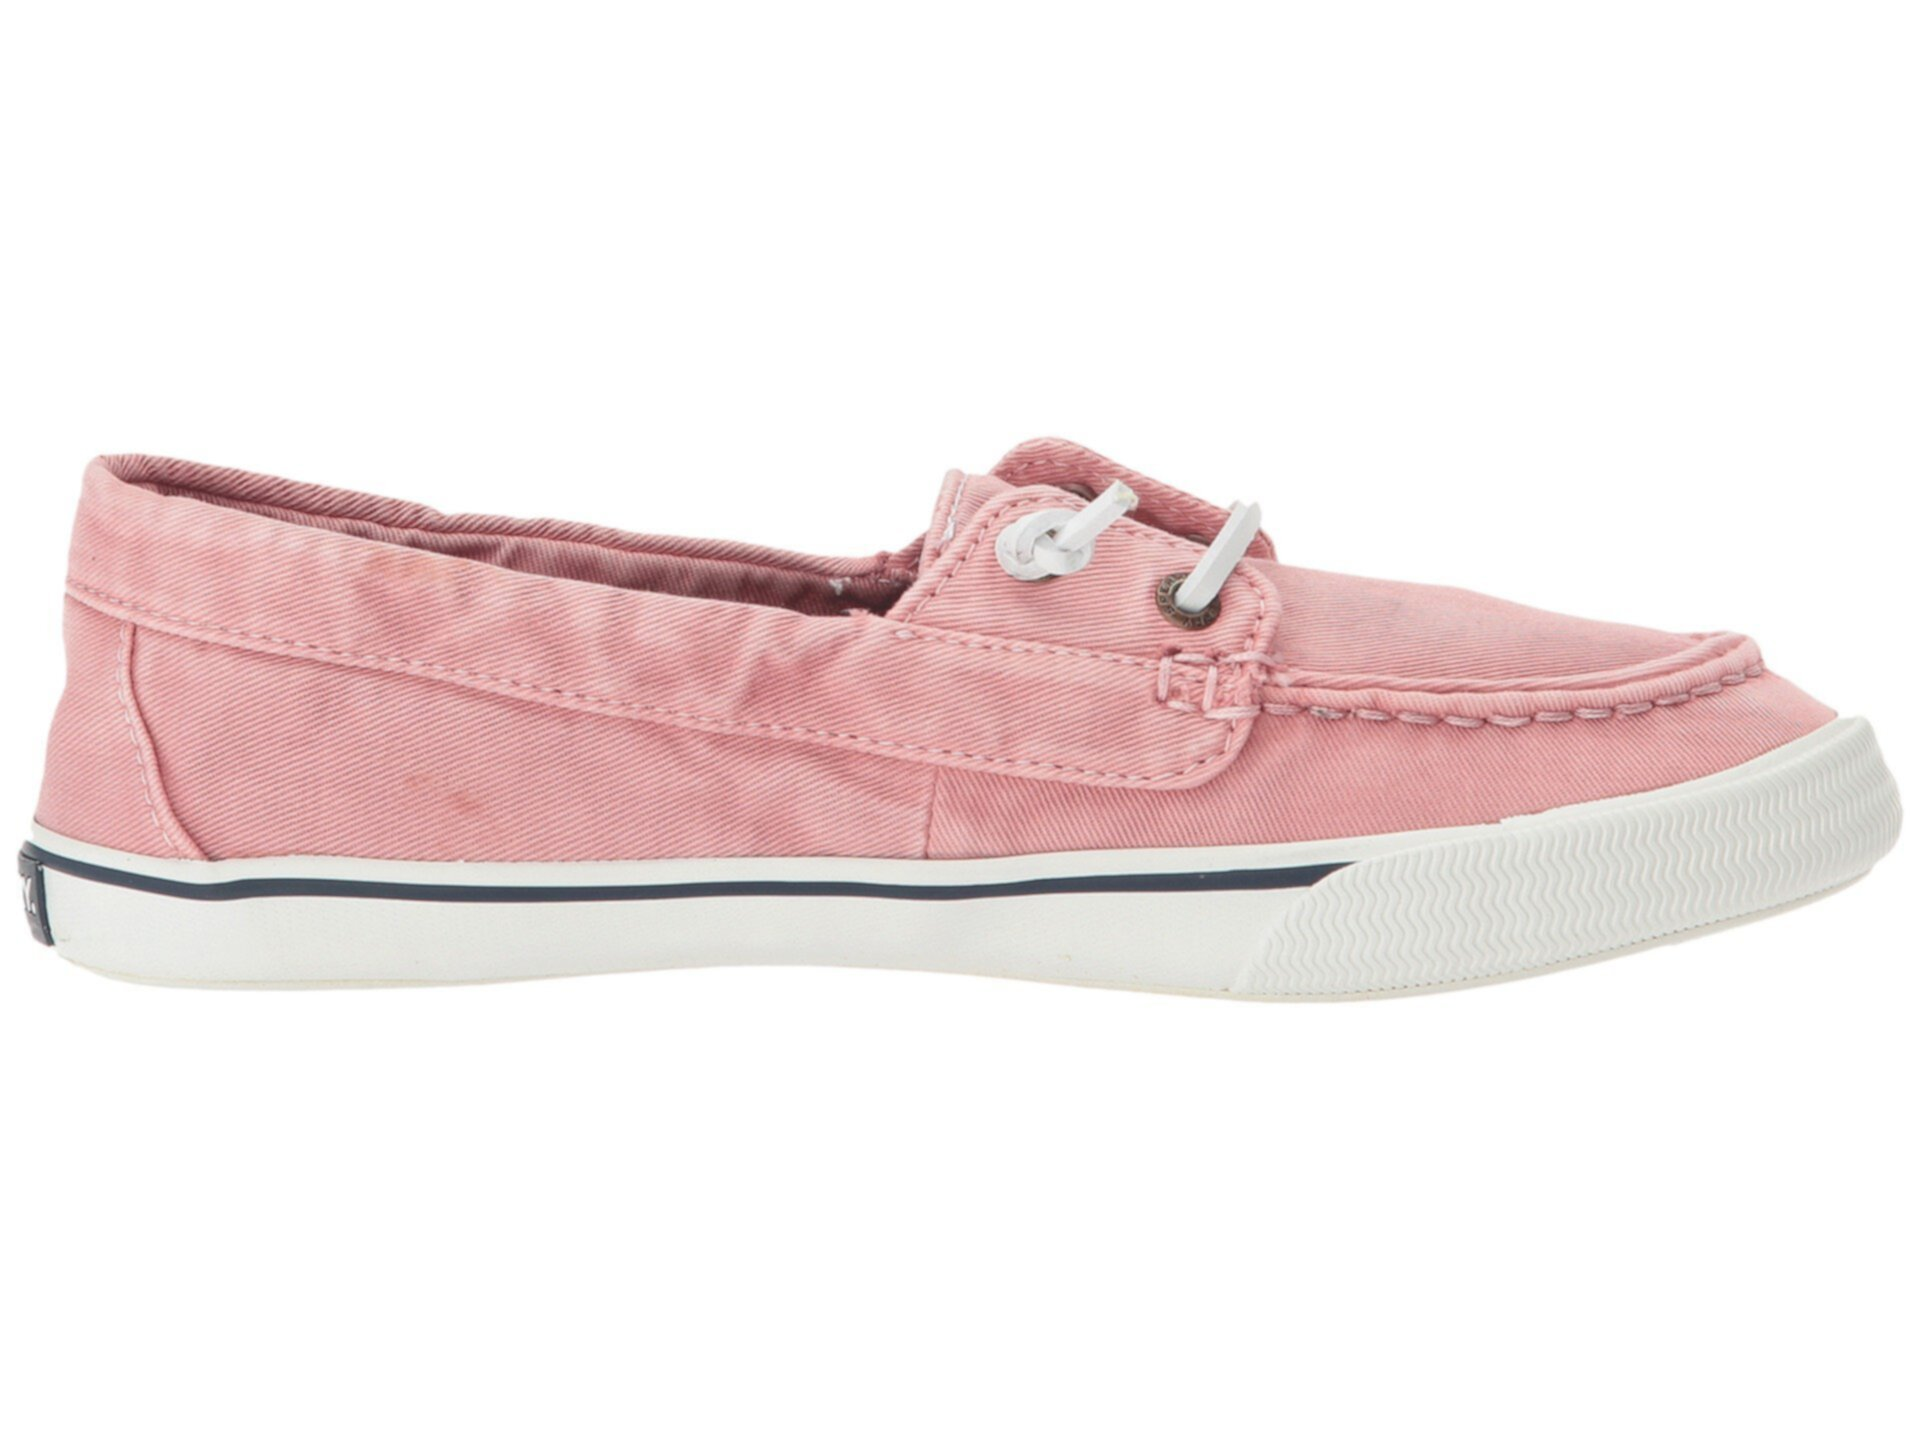 Lounge Away Washed Sperry